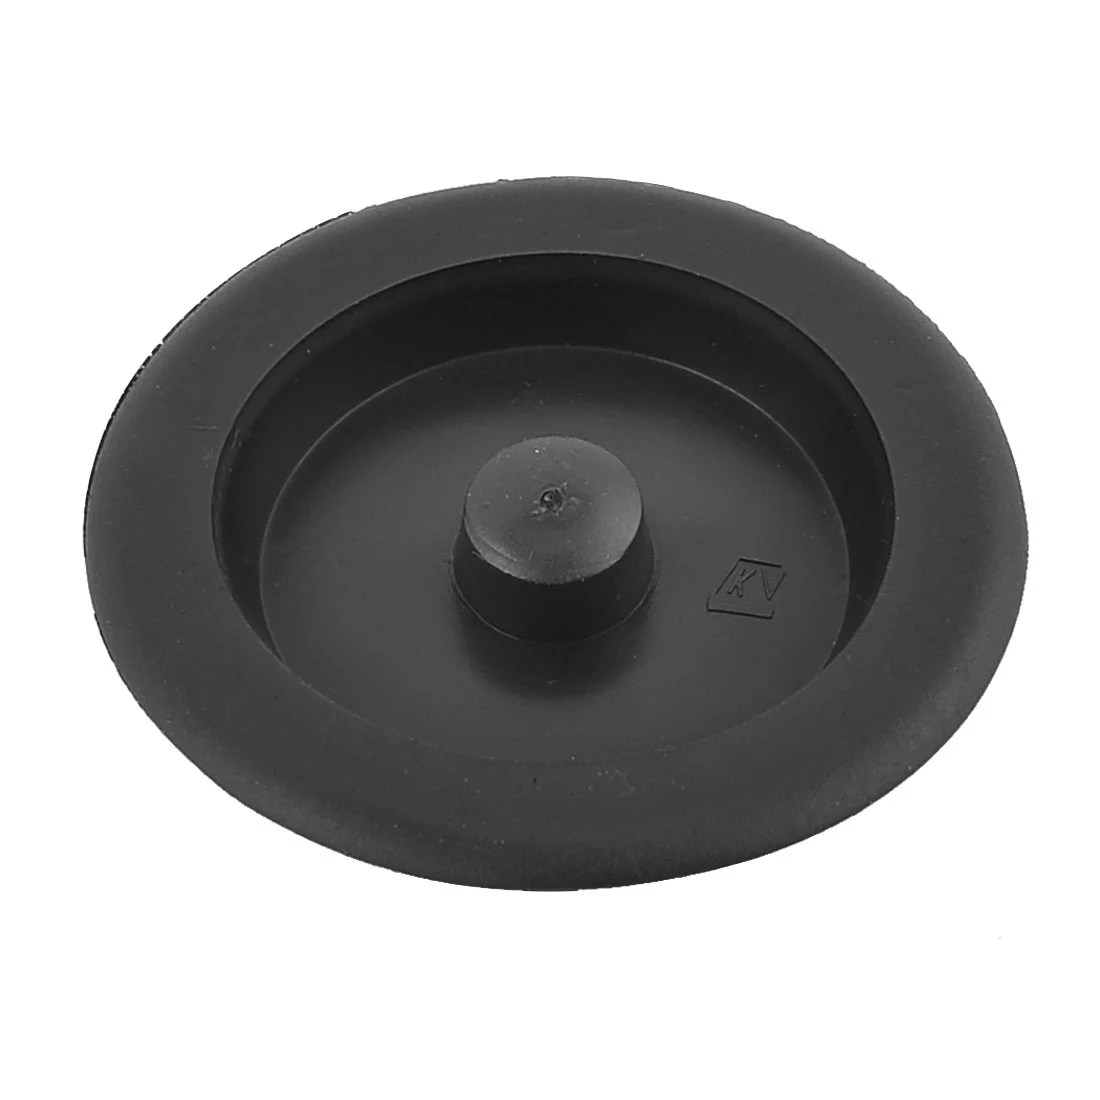 kitchen sink plug hole fitting white marble countertops plastic basin water disposal stopper for bathroom fit 65mm black walmart com